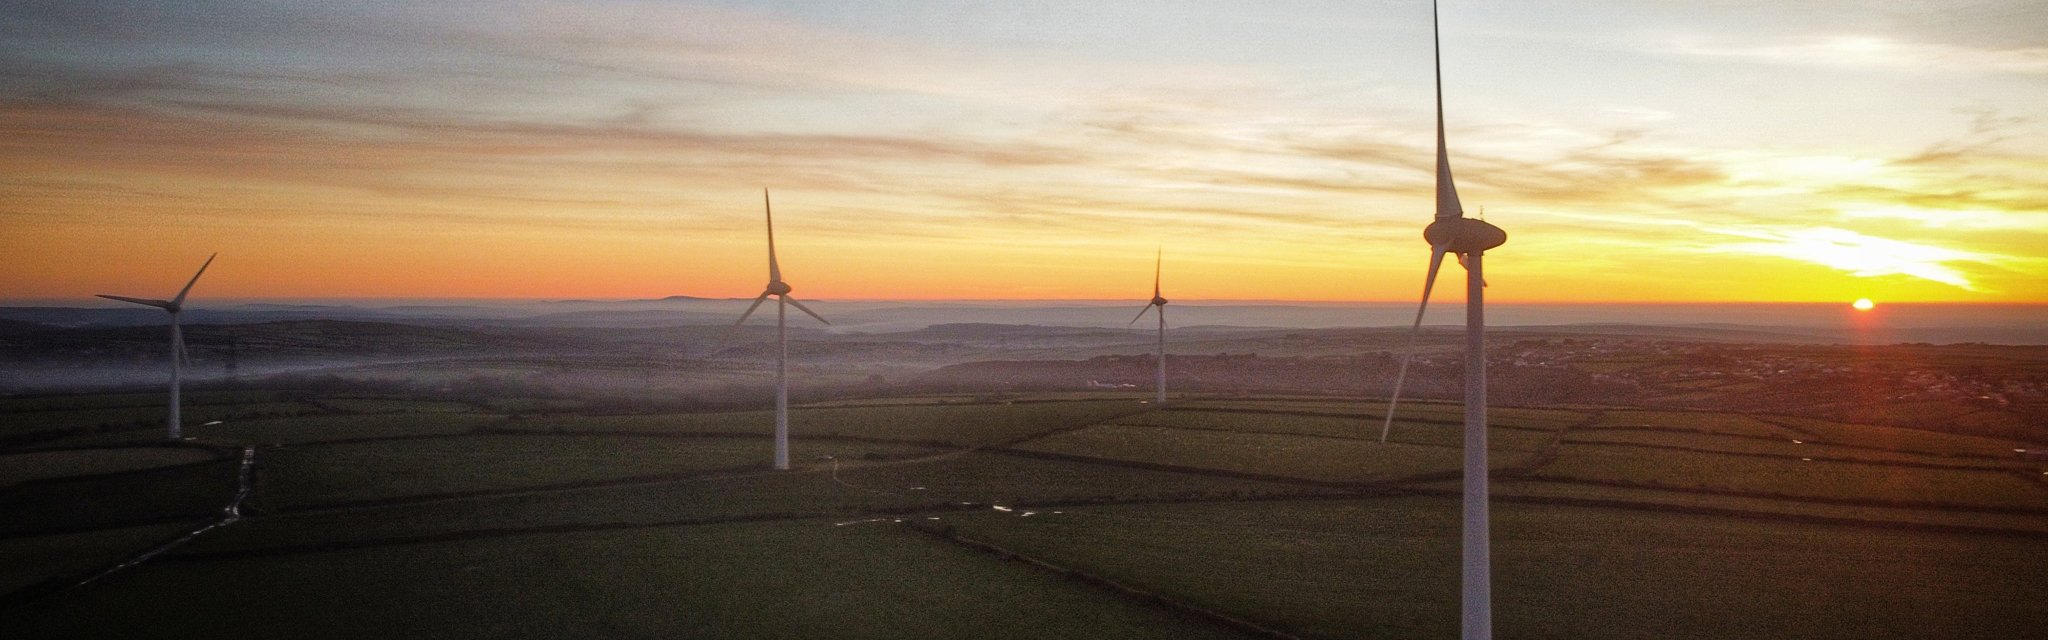 Windfarms at Sunset in North Cornwall